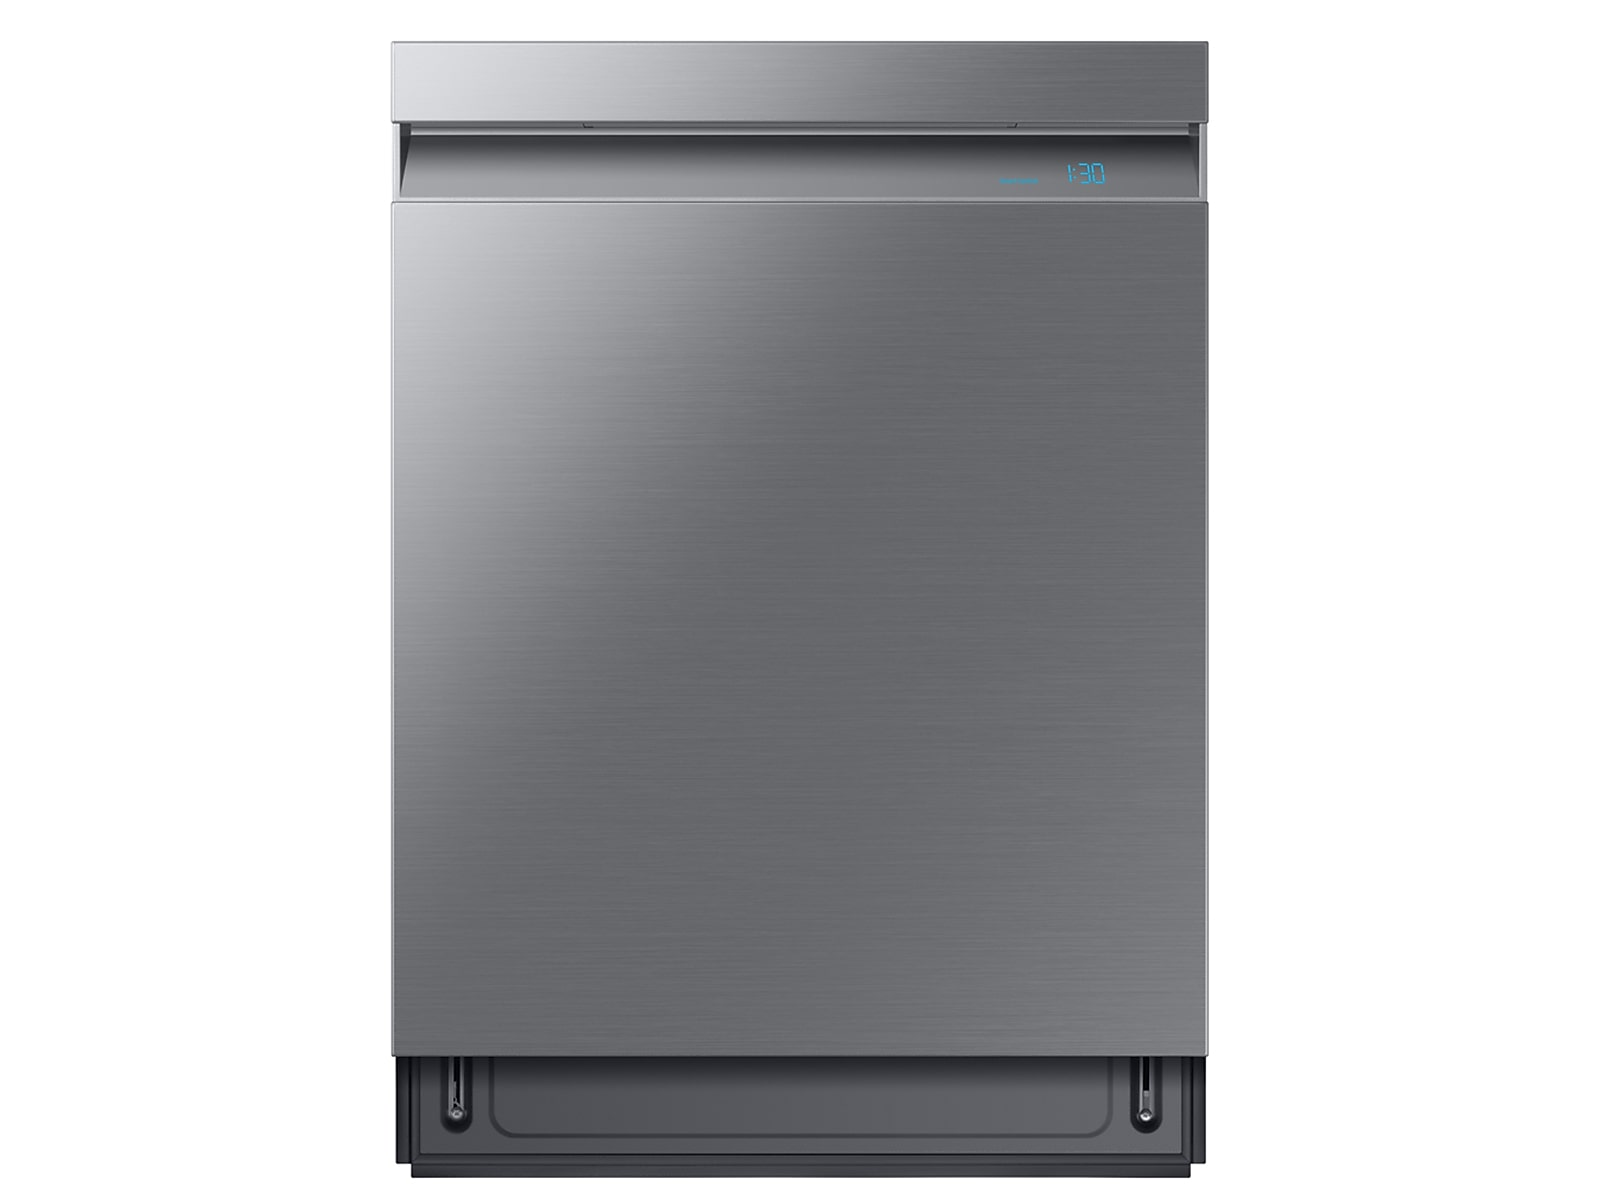 Samsung coupon: Samsung Smart Linear Wash 39dBA Dishwasher in Silver(DW80R9950US/AA)